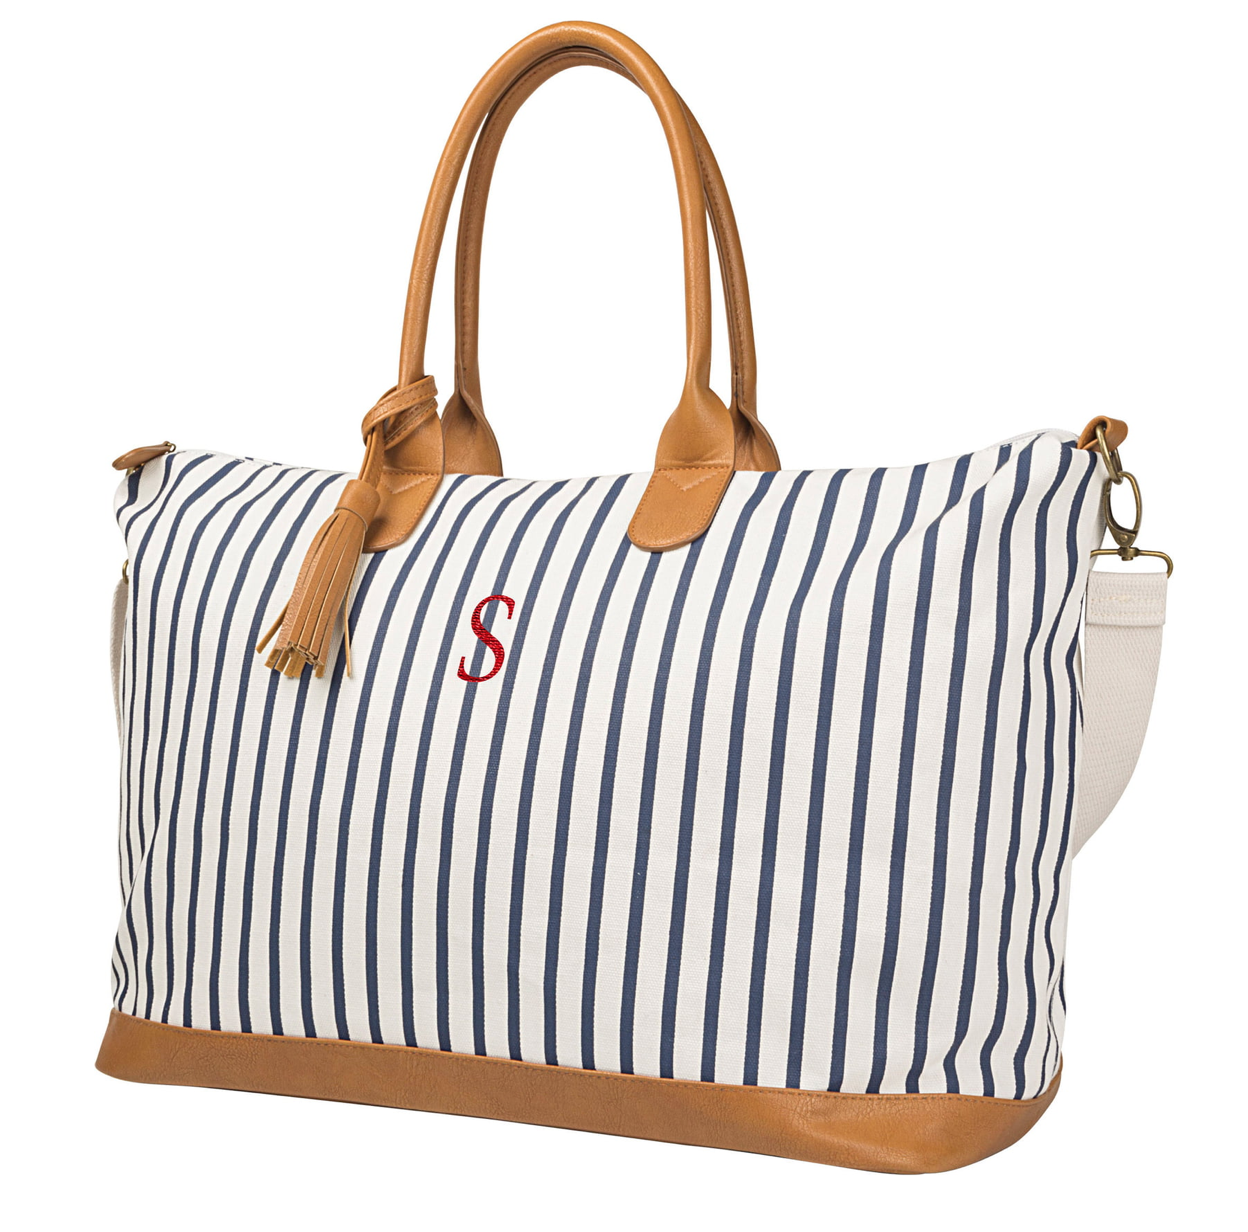 Cathy's Concepts Monogrammed Oversized Tote